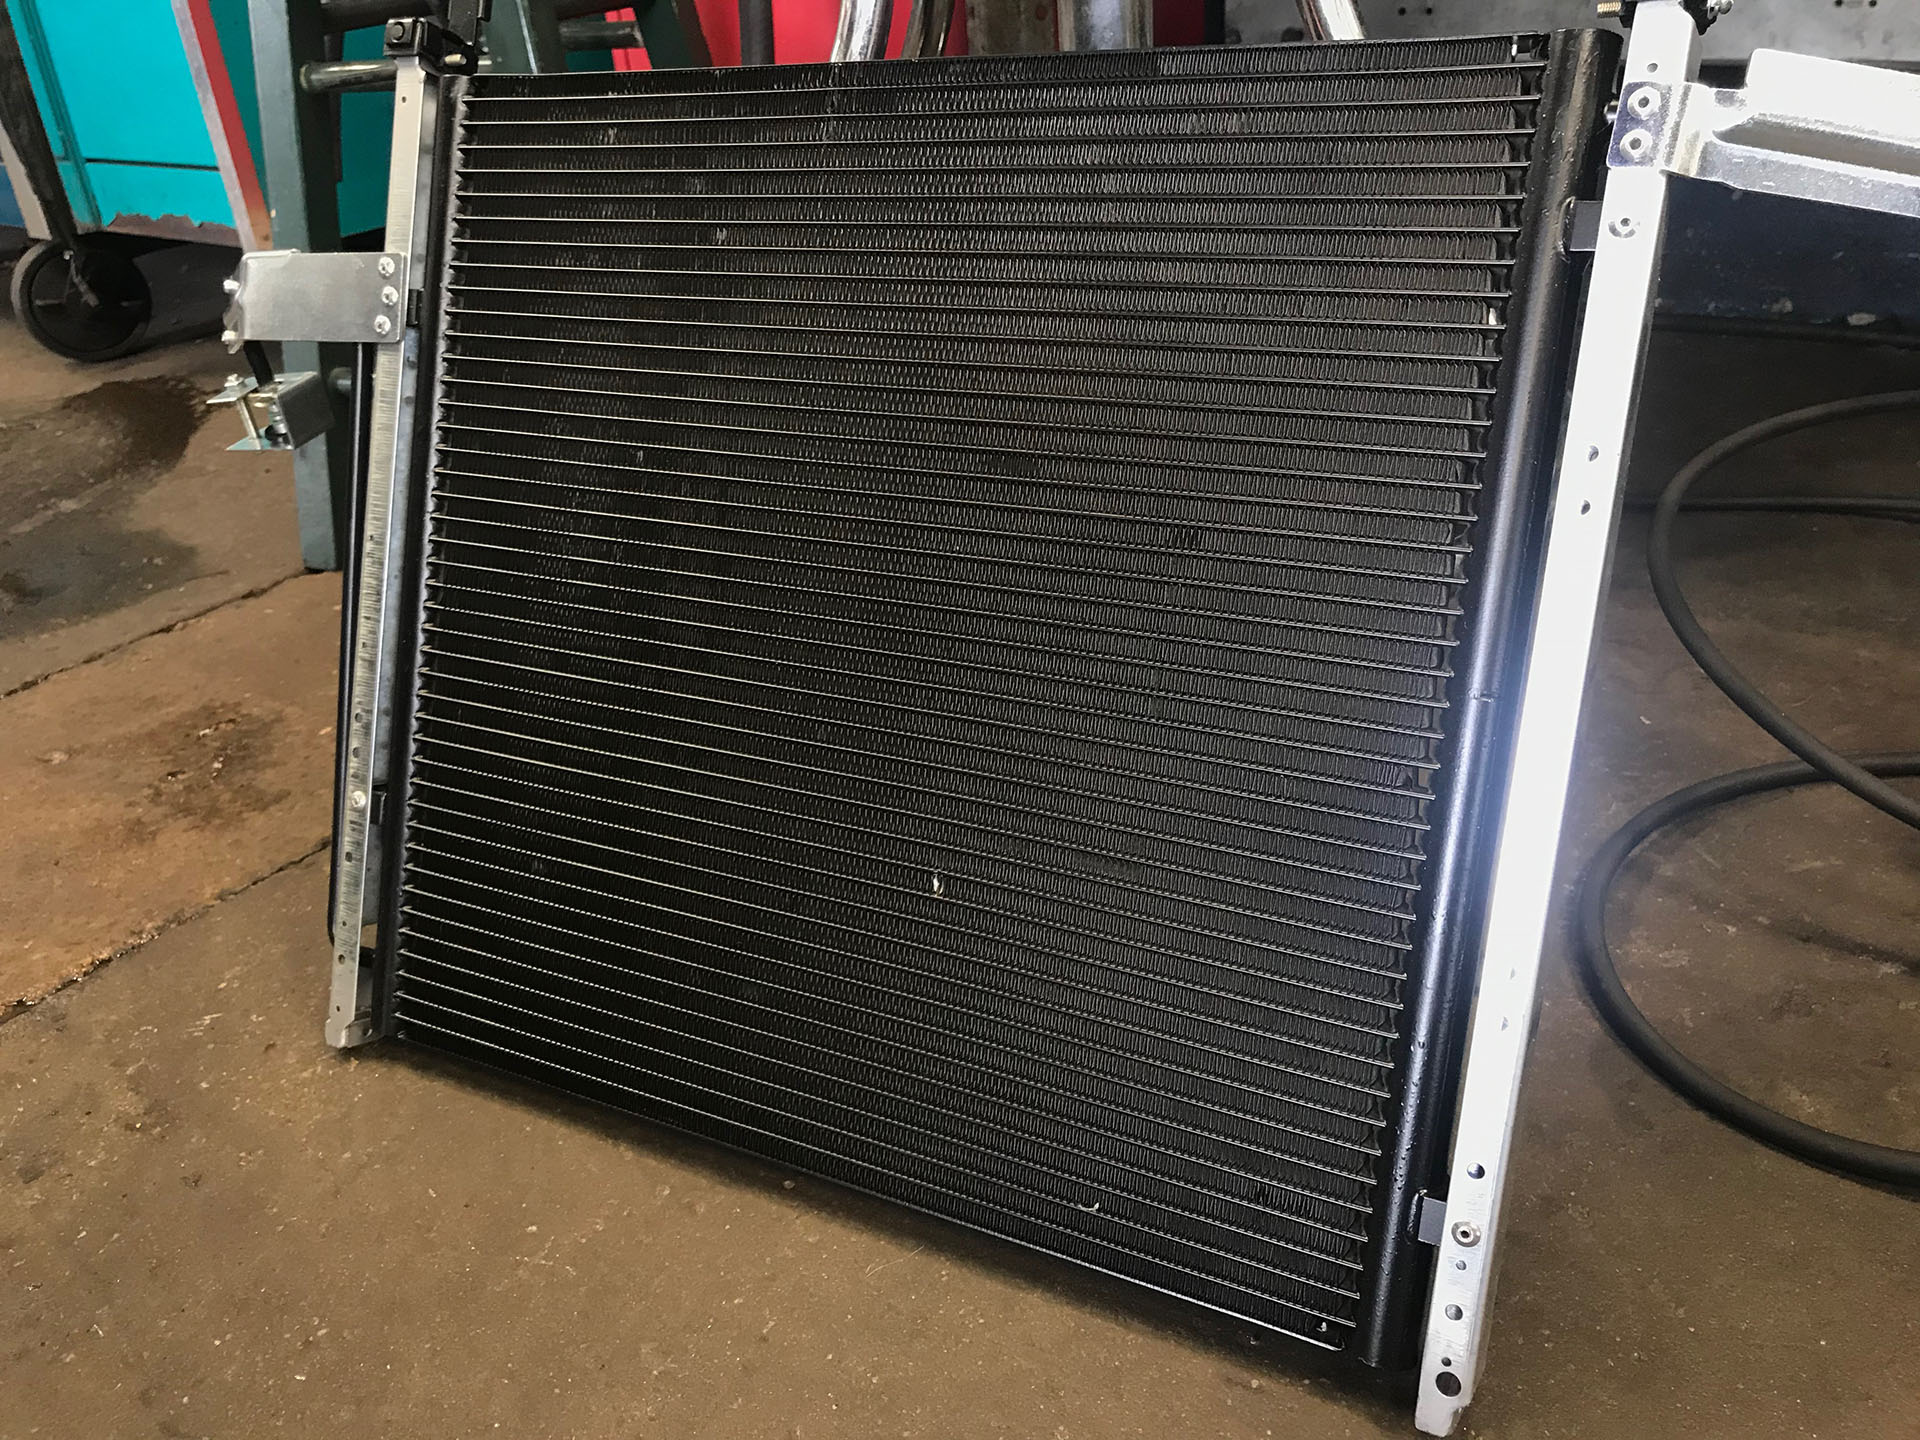 Why you should replace an air conditioning condenser